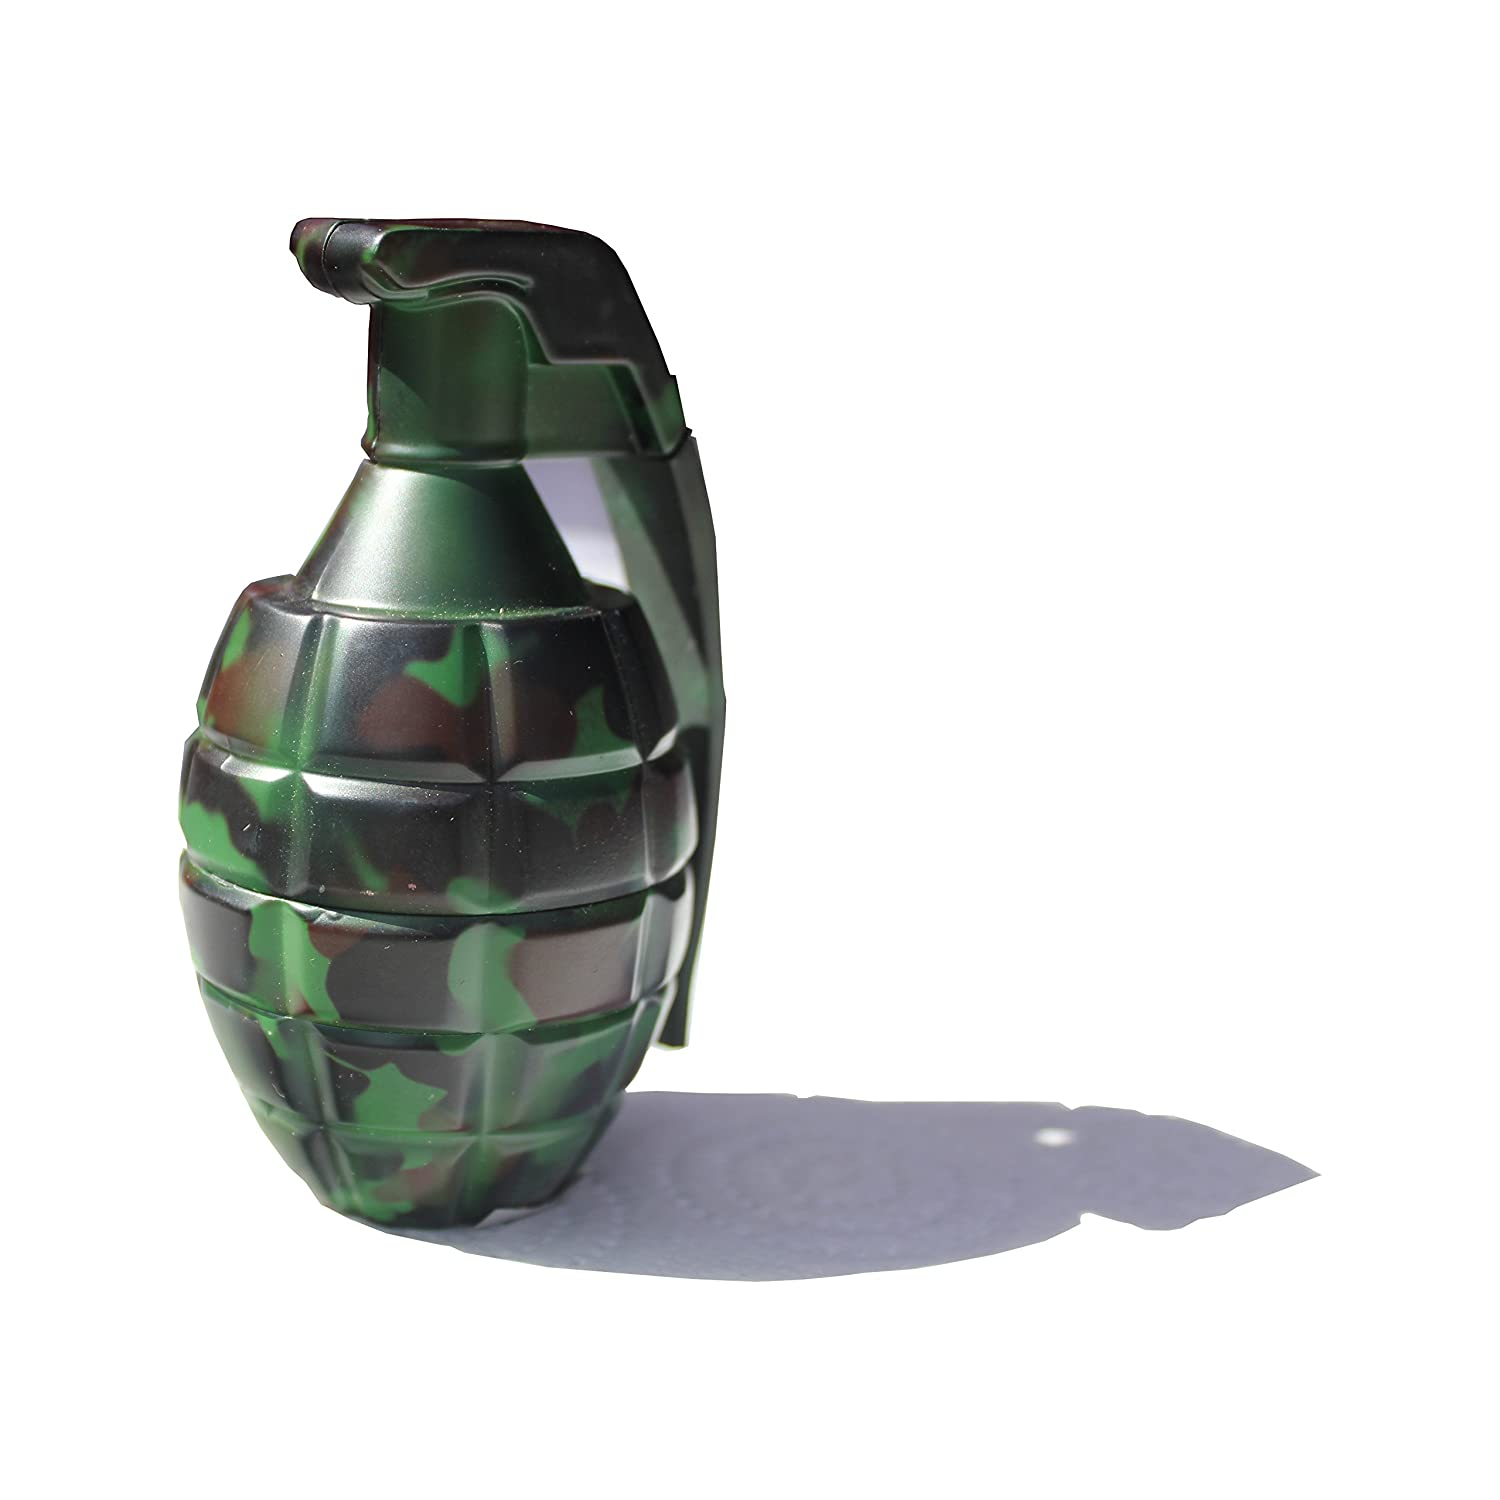 Camo Hand Grenade Shape Pin Handle 3 Parts Magnetic Herbal Grinder Pollen Sifter A R PREMIUM LTD T03-004-AZO-3